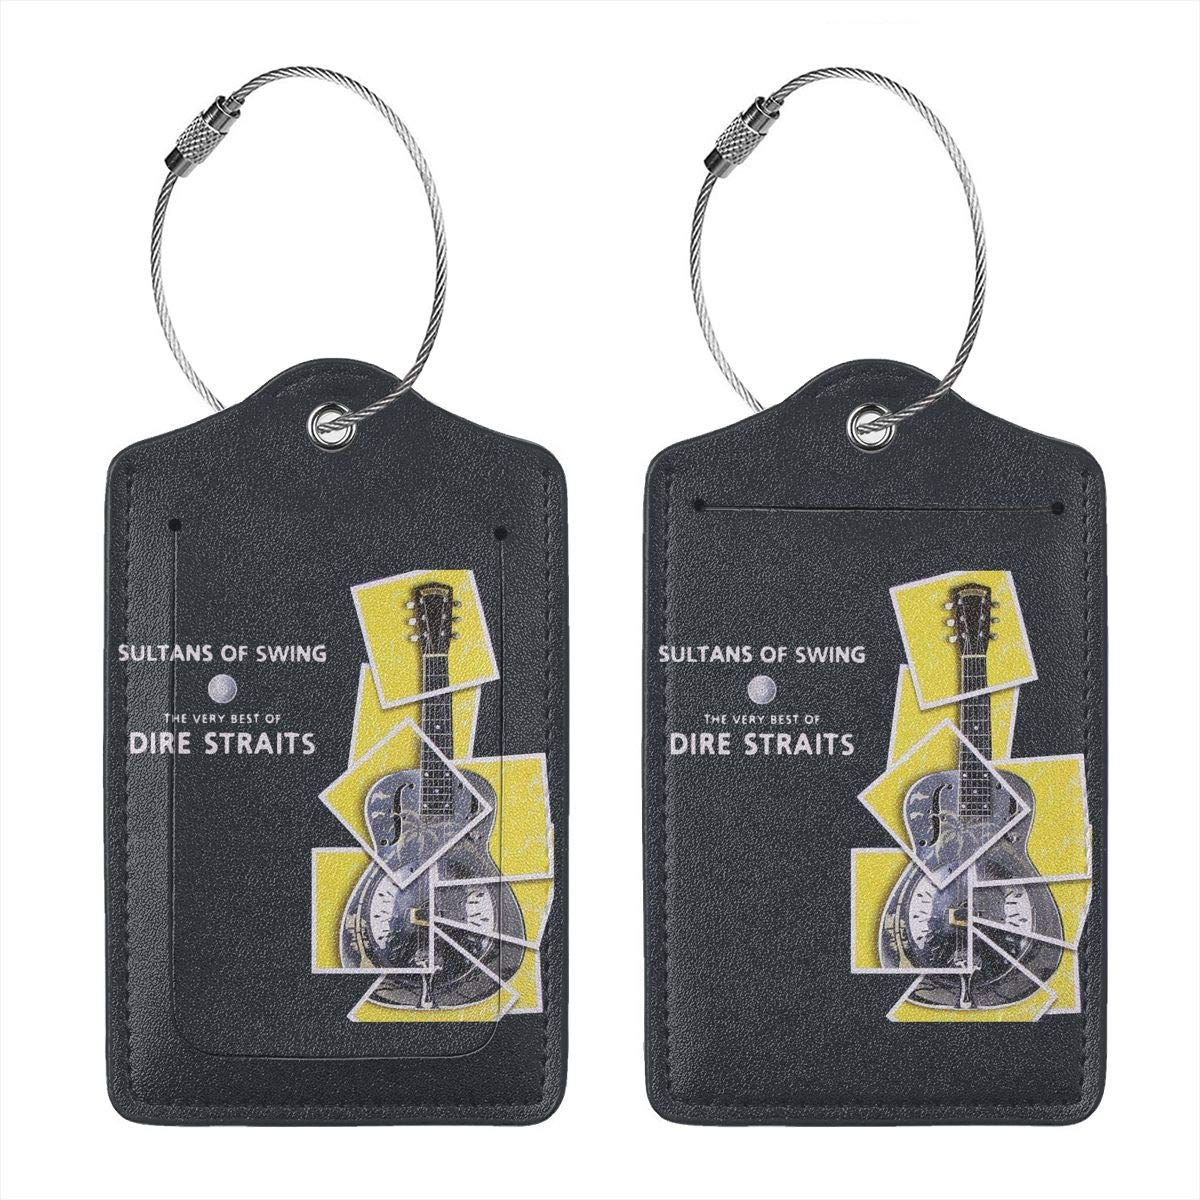 Dire Straits Sultans Of Swing Leather Luggage Tags Suitcase Tag Travel Bag Labels With Privacy Cover For Men Women 2 Pack 4 Pack